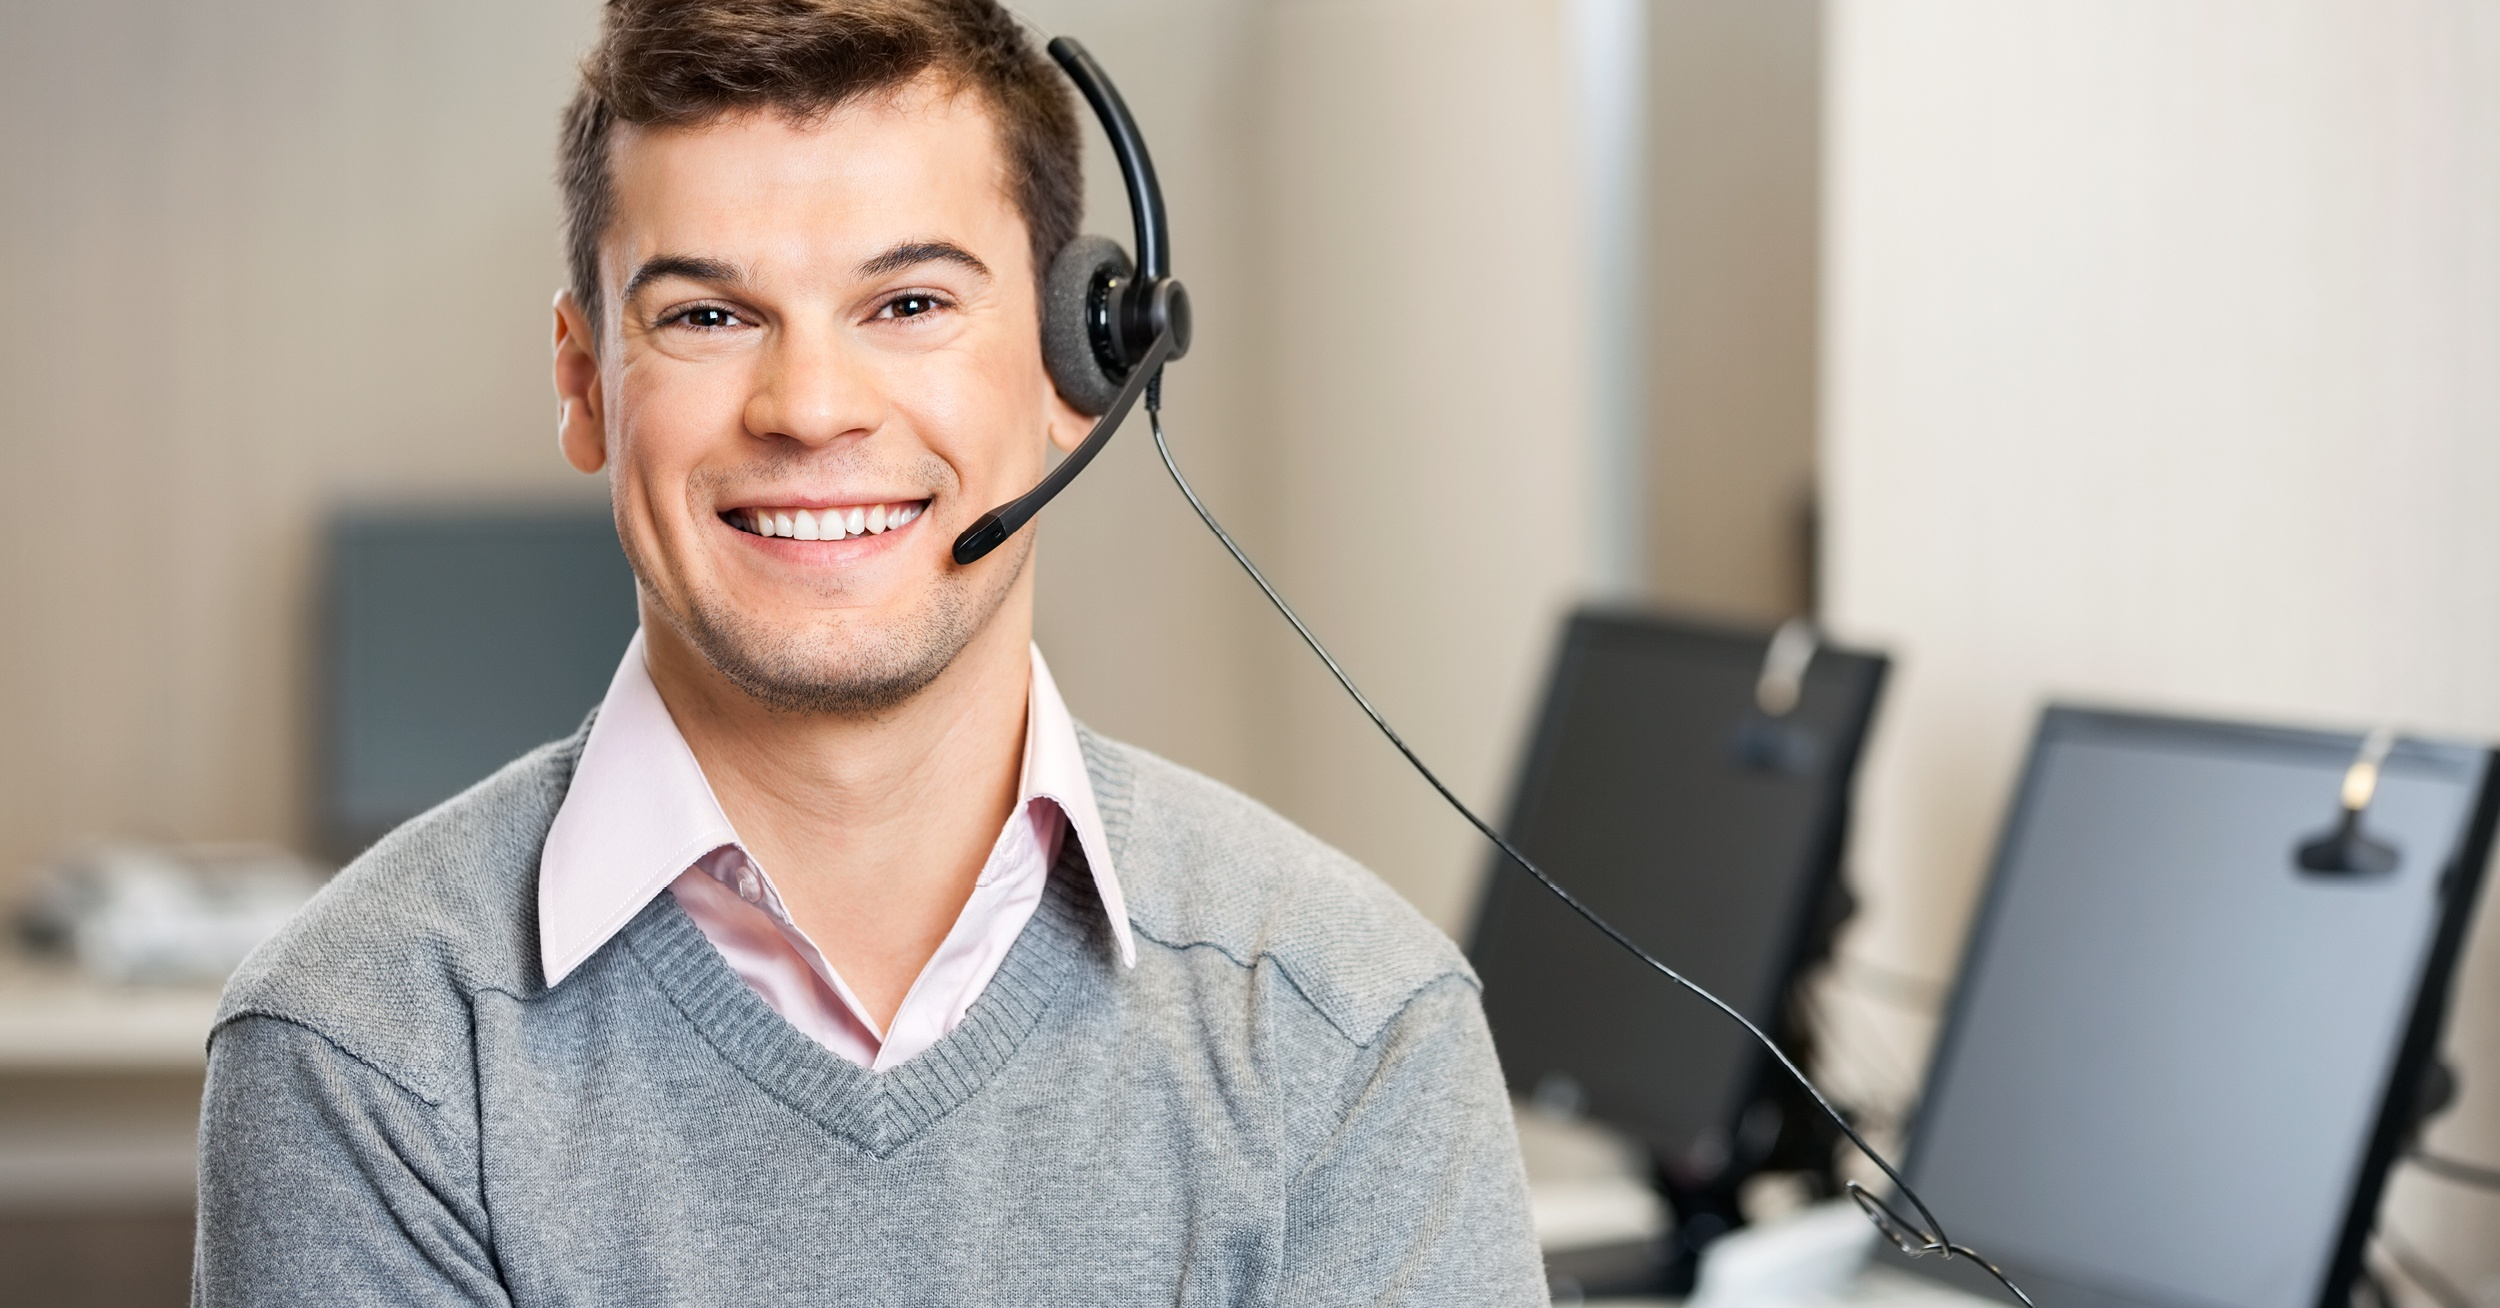 We Offer Great EMS Customer Service & Support